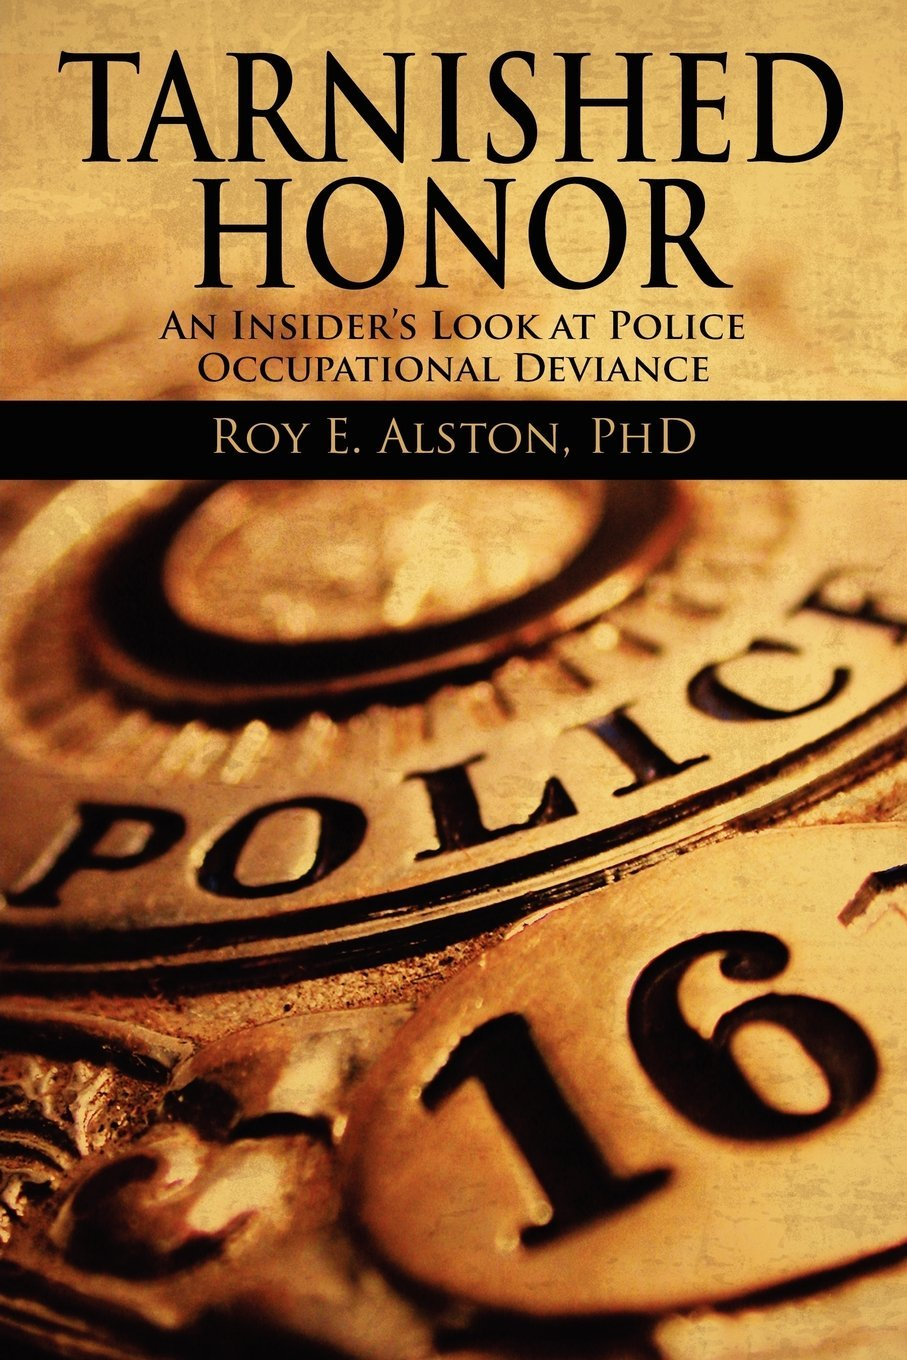 Tarnished Honor: An Insider's Look at Police Occupational Deviance